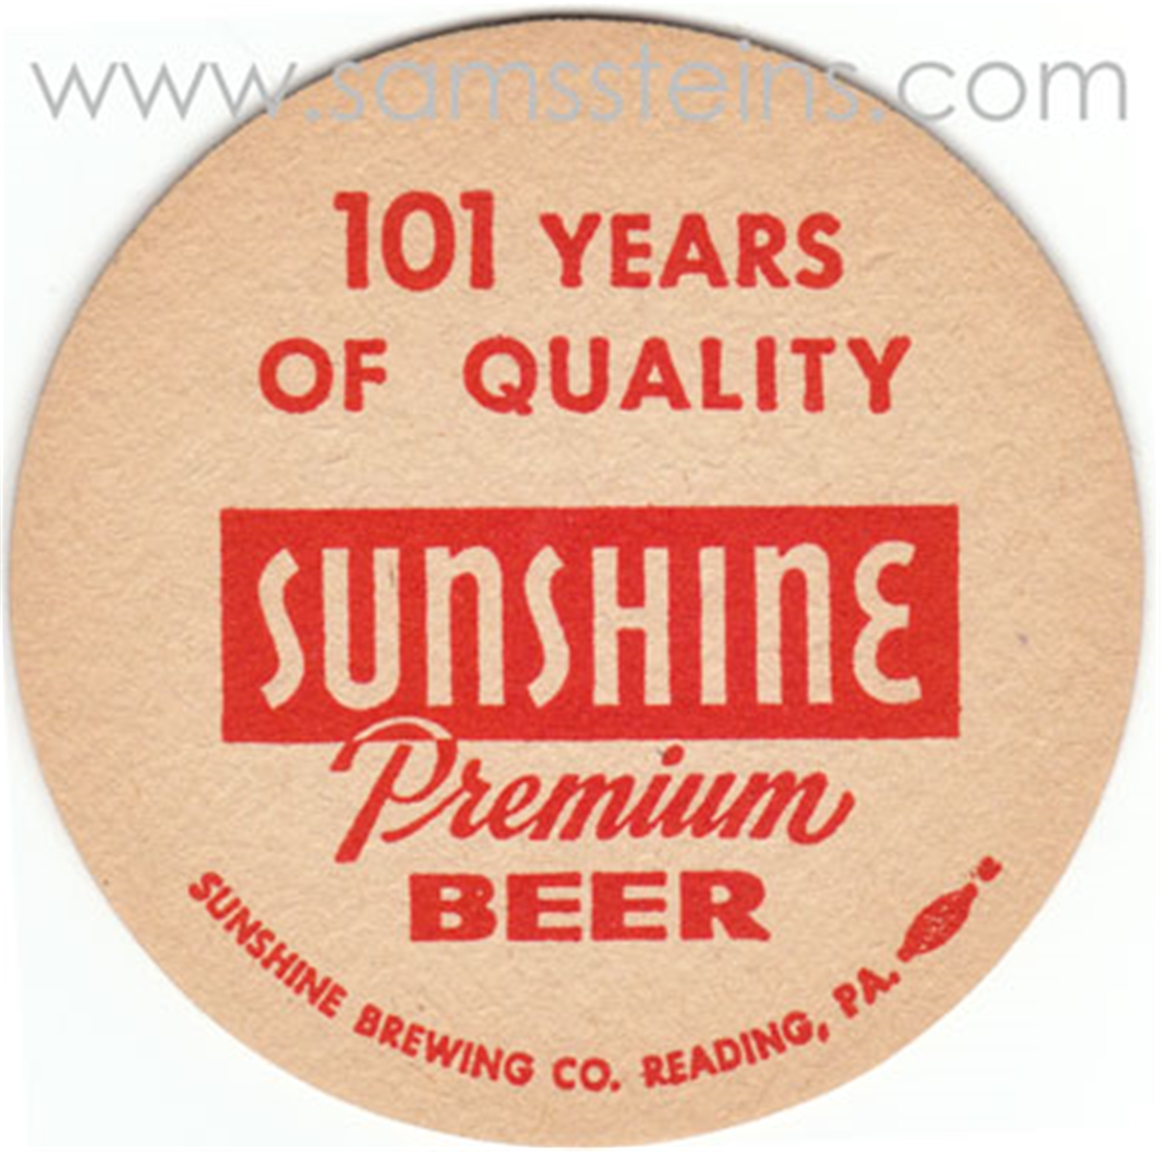 Sunshine 101 Years Beer Coaster